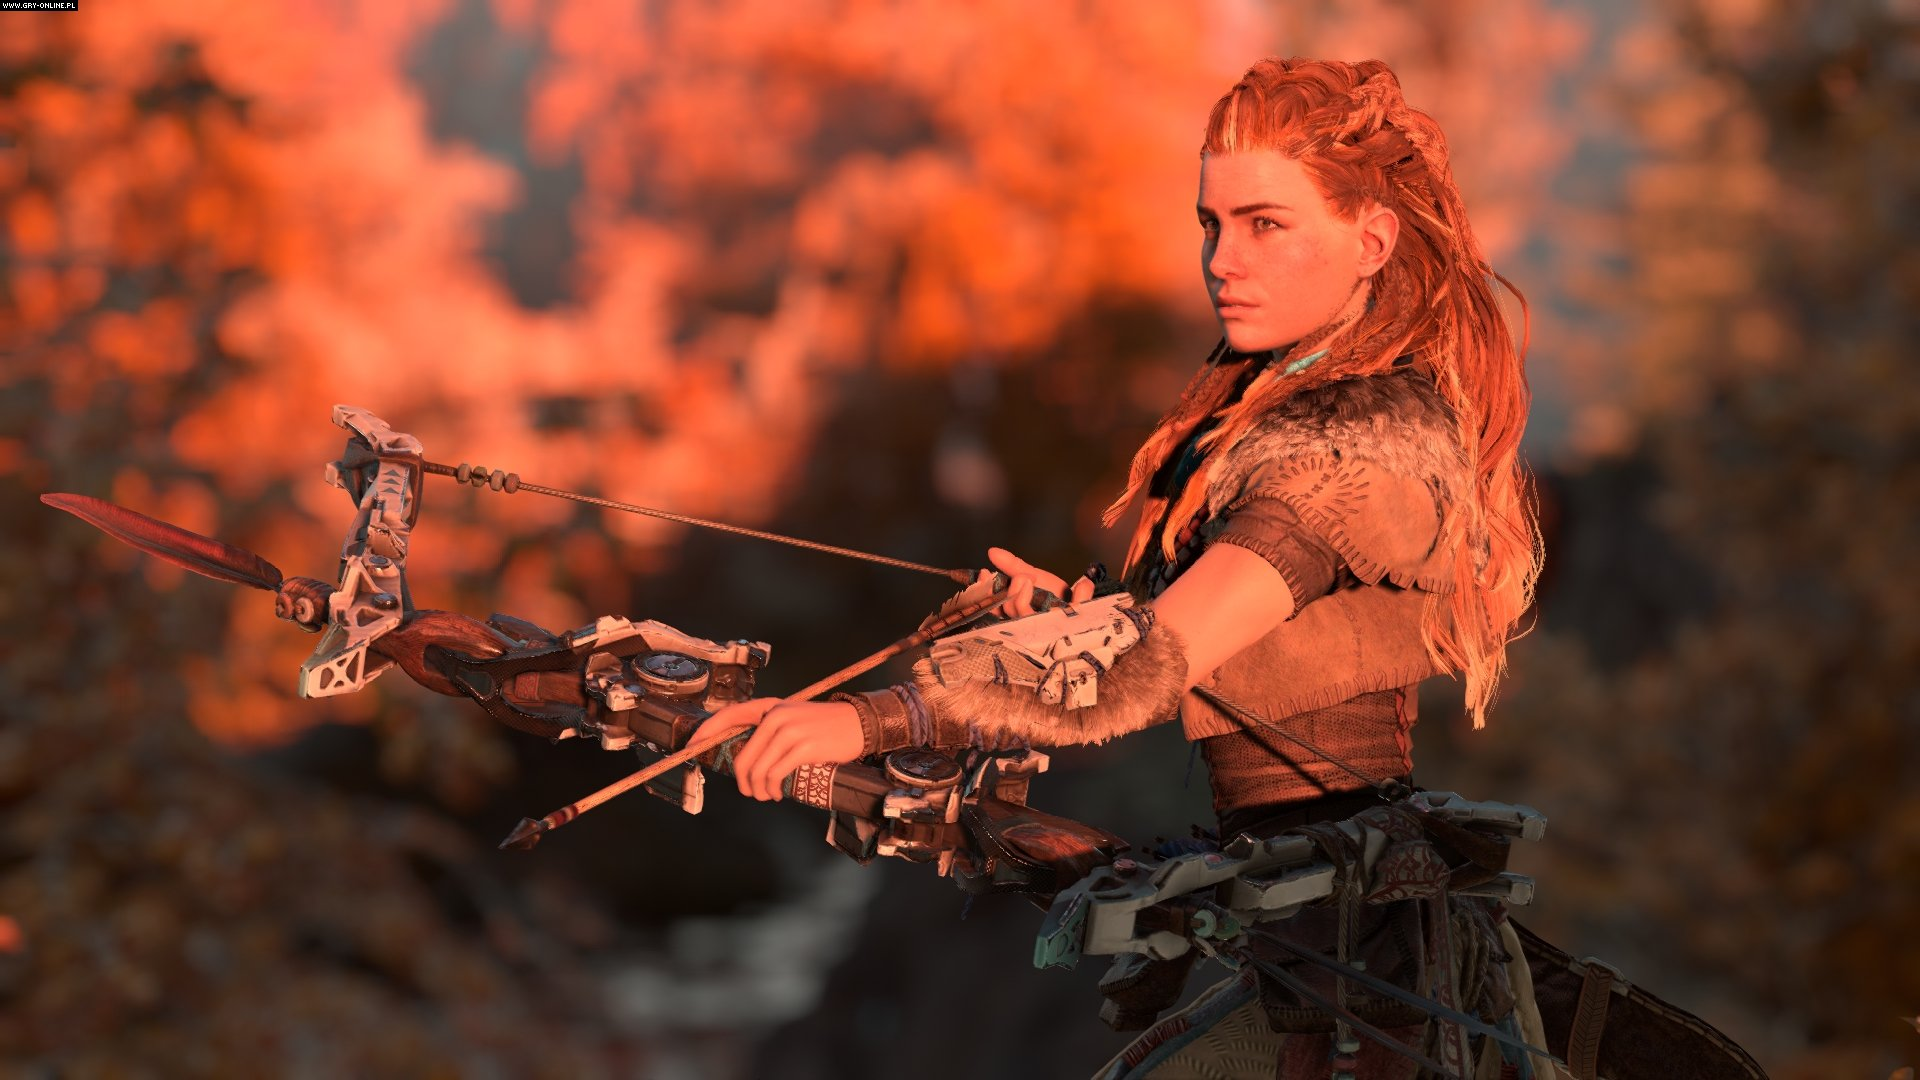 Horizon: Zero Dawn PS4 Gry Screen 129/131, Guerrilla Games, Sony Interactive Entertainment